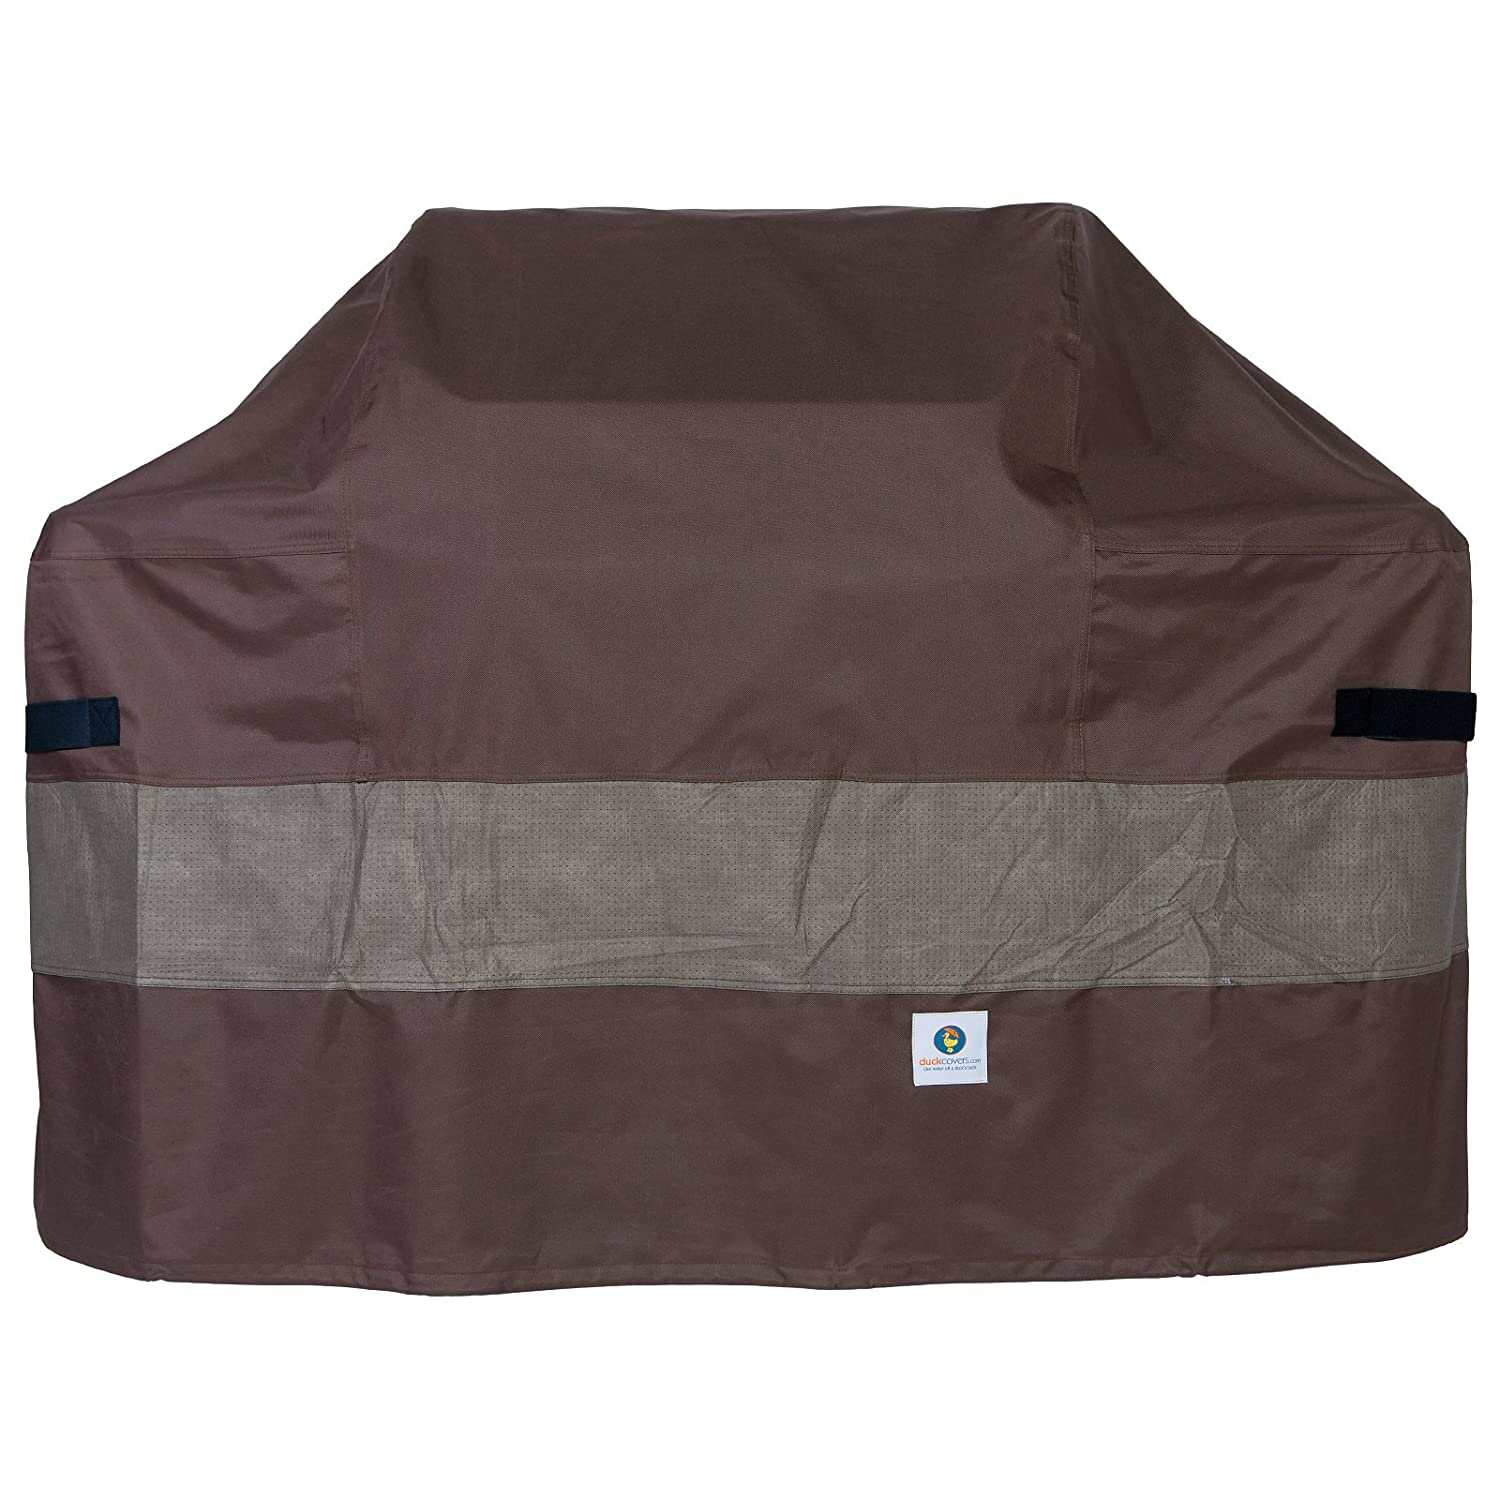 Duck Covers UBB612942 Ultimate BBQ Grill Cover